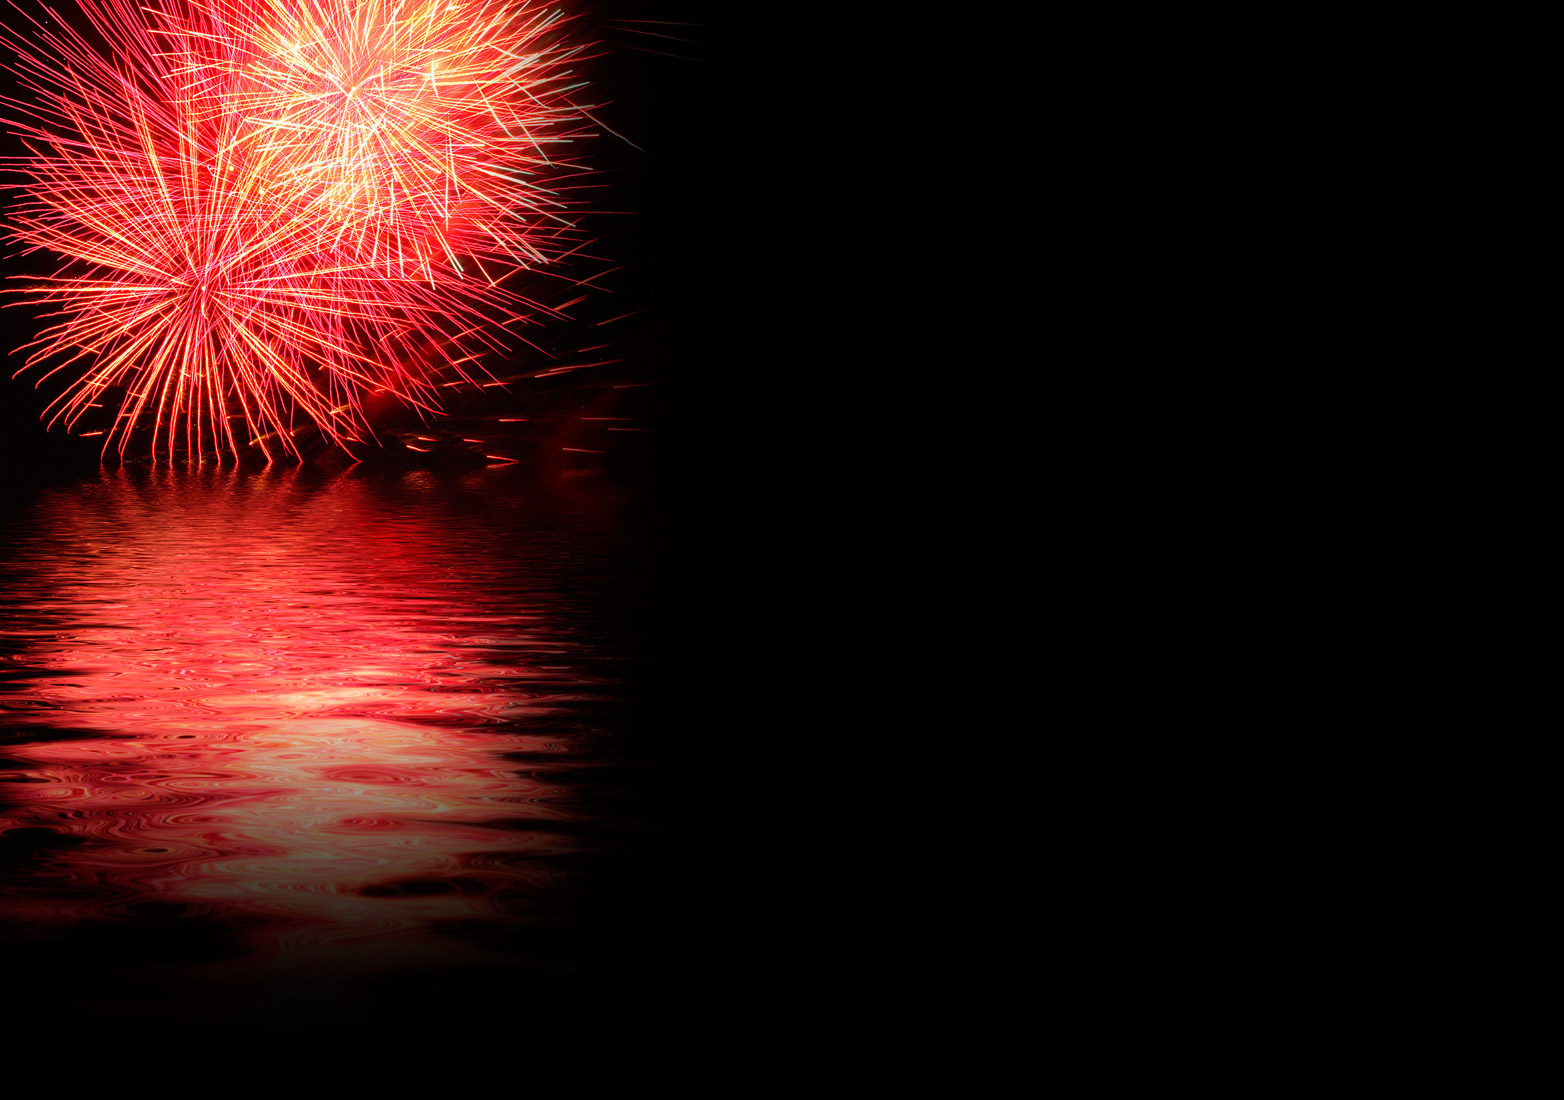 Fireworks Twitter Background -Fireworks Background for Twitter ...